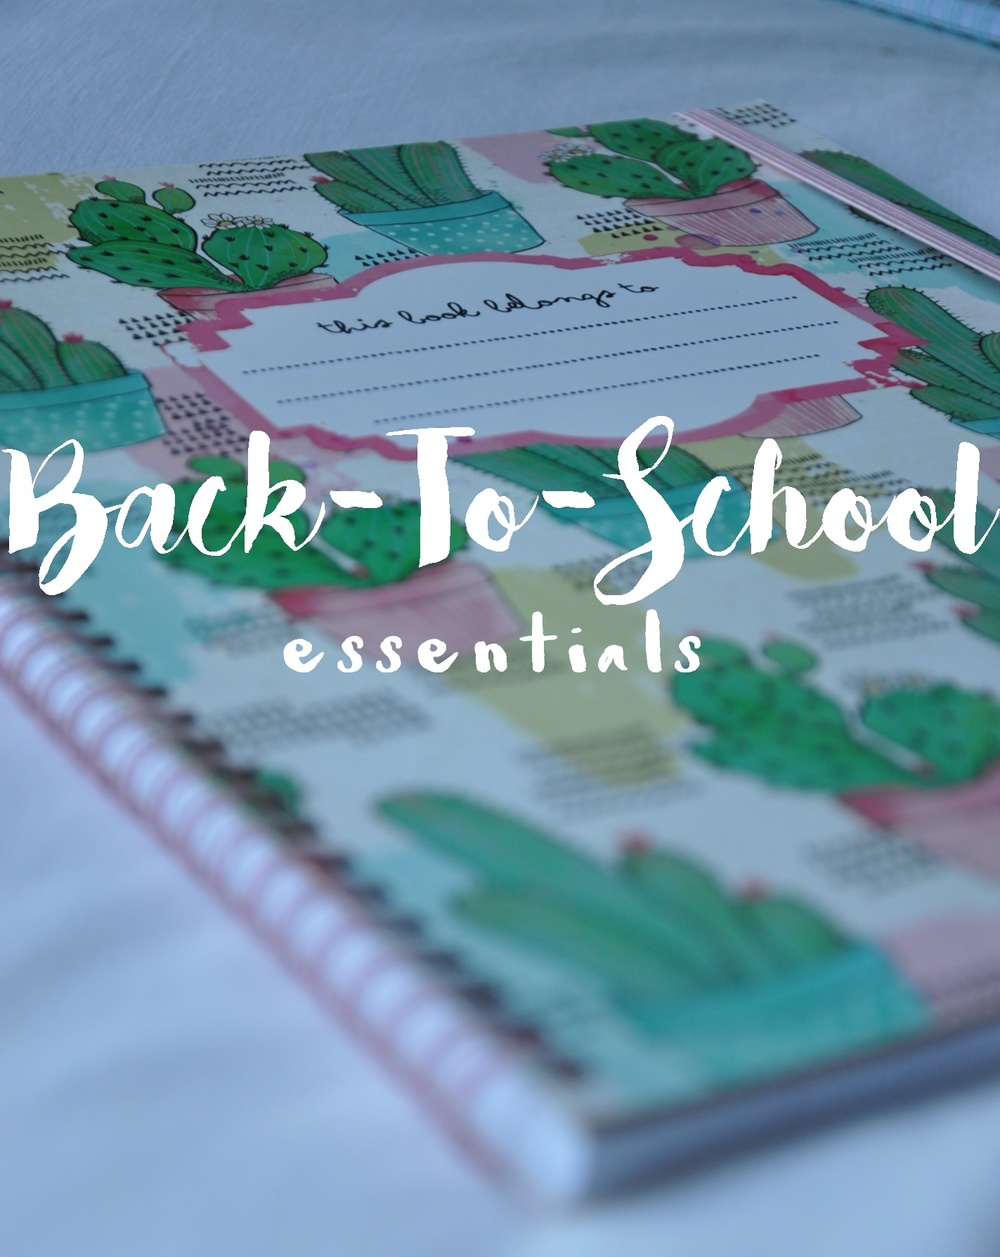 Back-To-School Essentials – All things you need for the new year and a fresh start at school. Includes school backpack, cute notebooks, stationery, waterbottle, cooler bag lunchbox, sticky notes, planner and pencil case. Darling ideas, succulents, woodland animals, birds and beautiful illustrations. A Lovely Space | alovelyspace.com